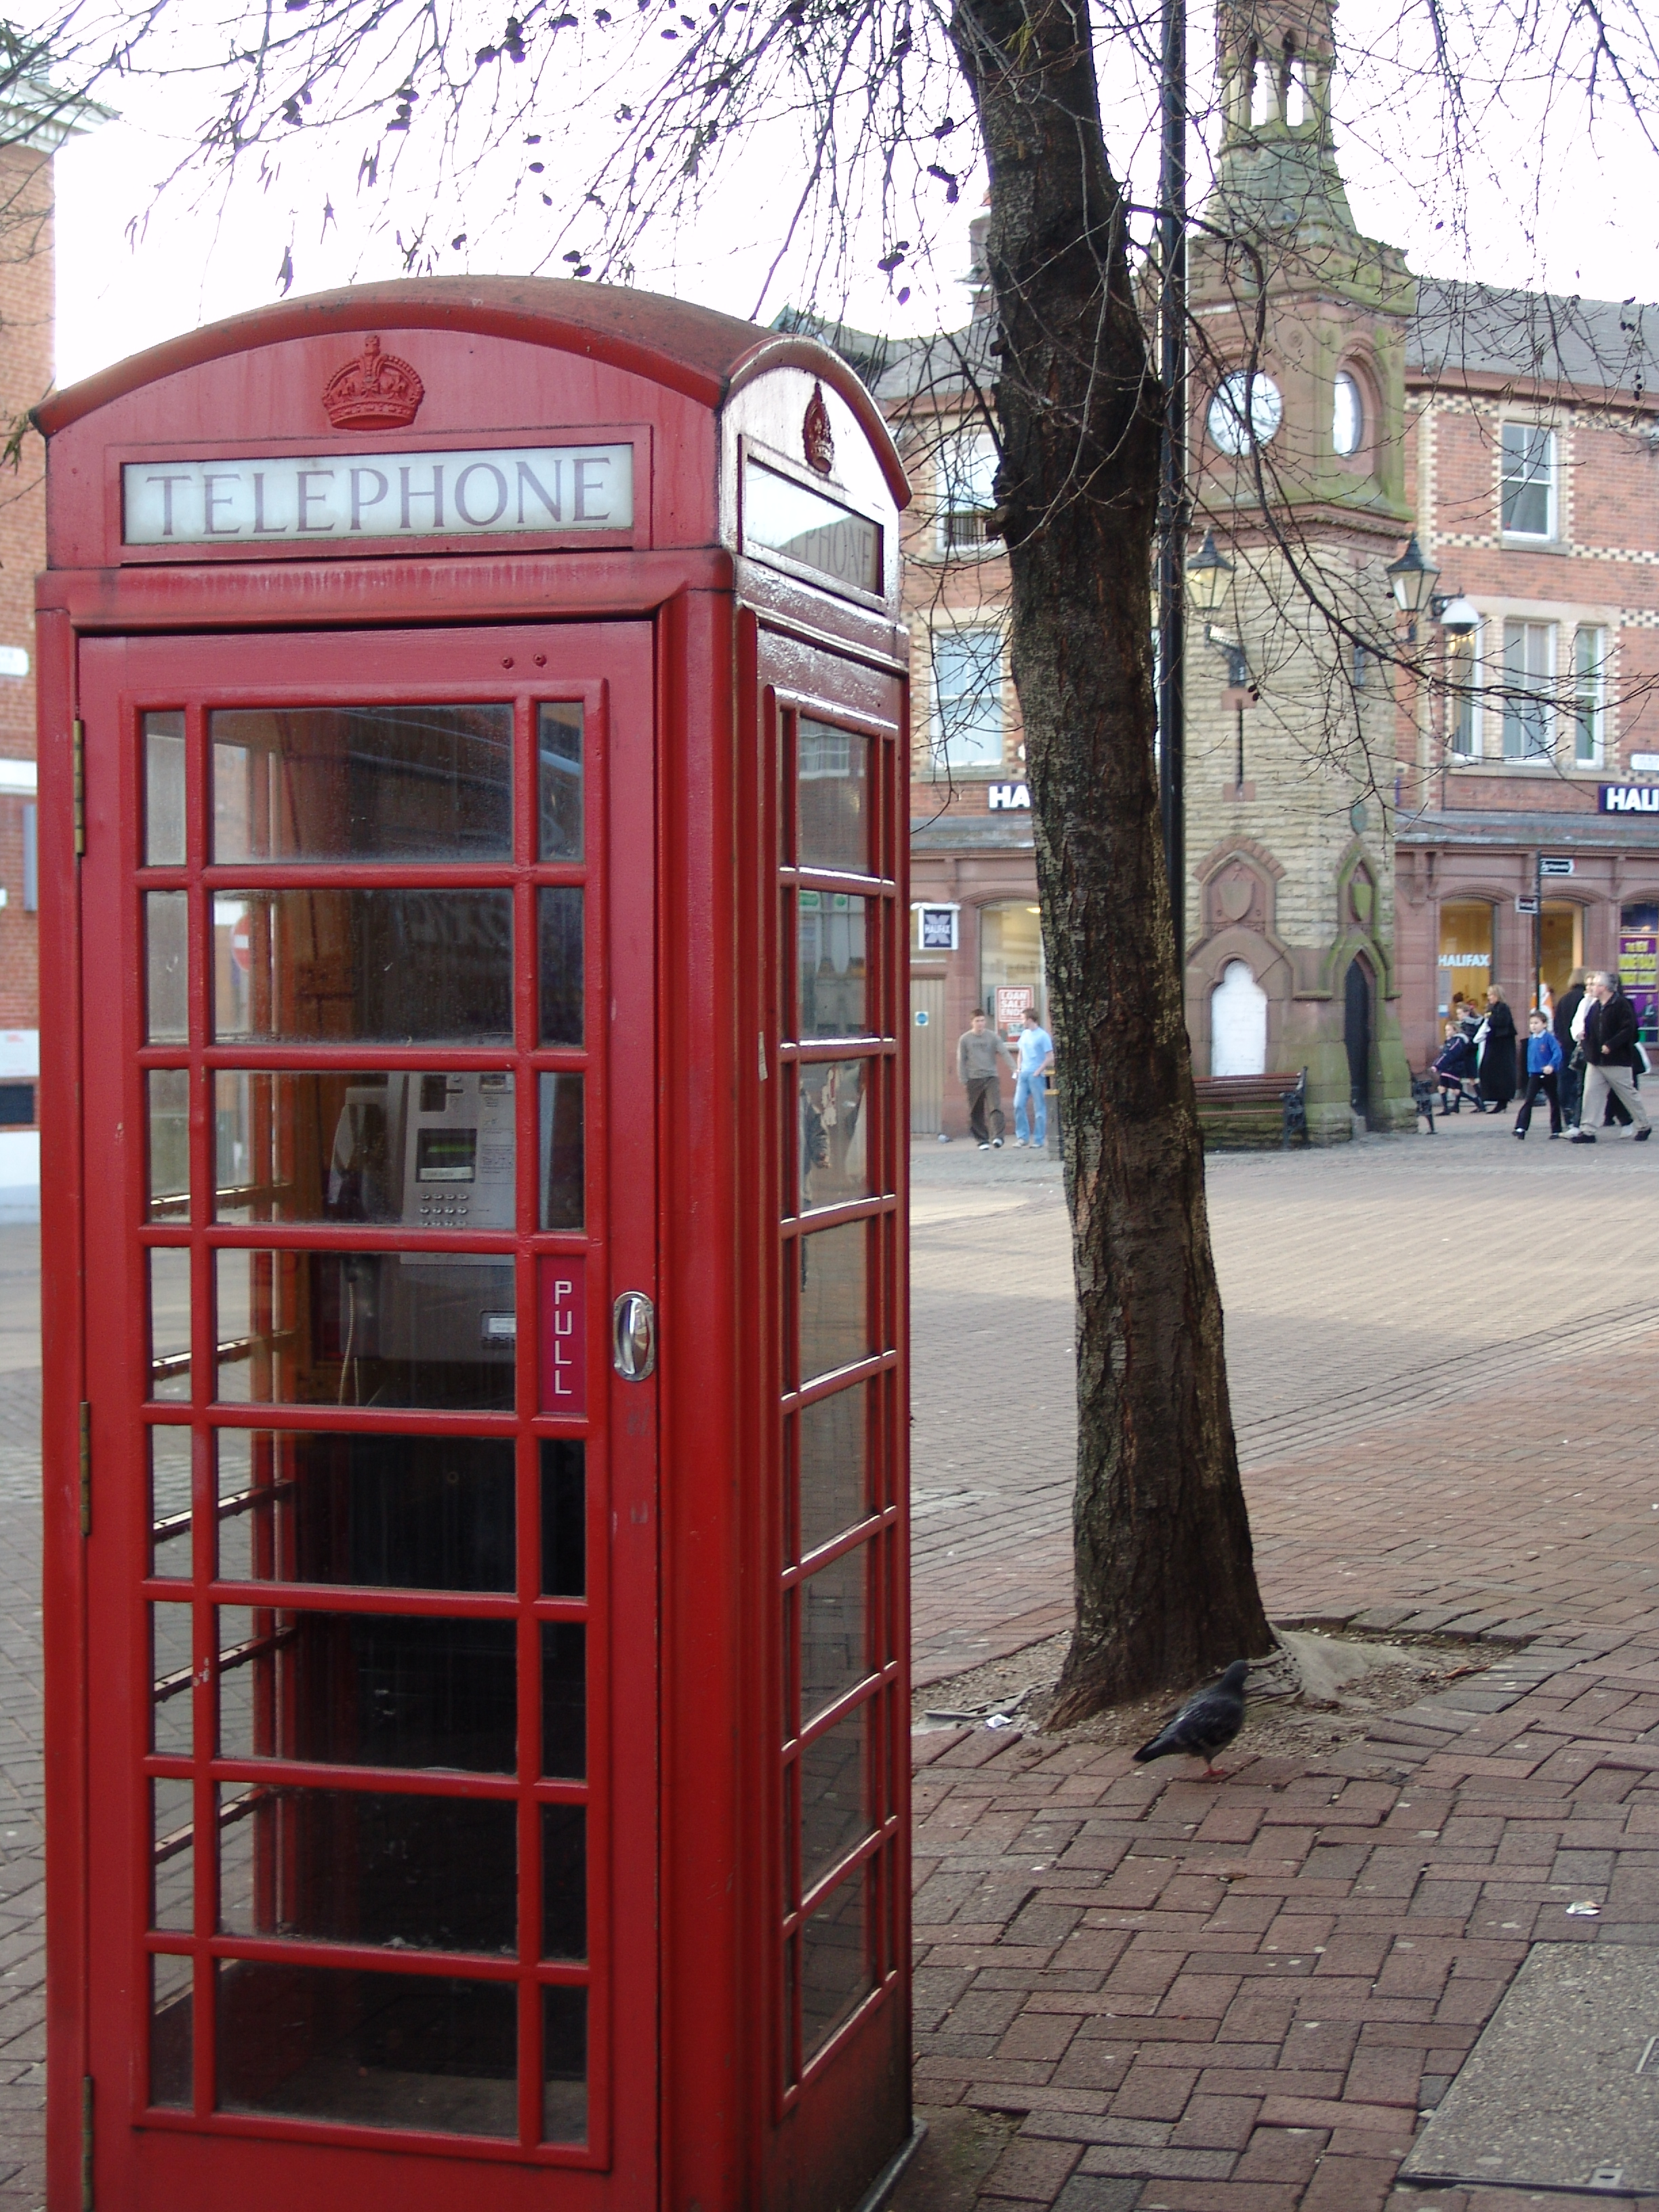 Red phone booth in England